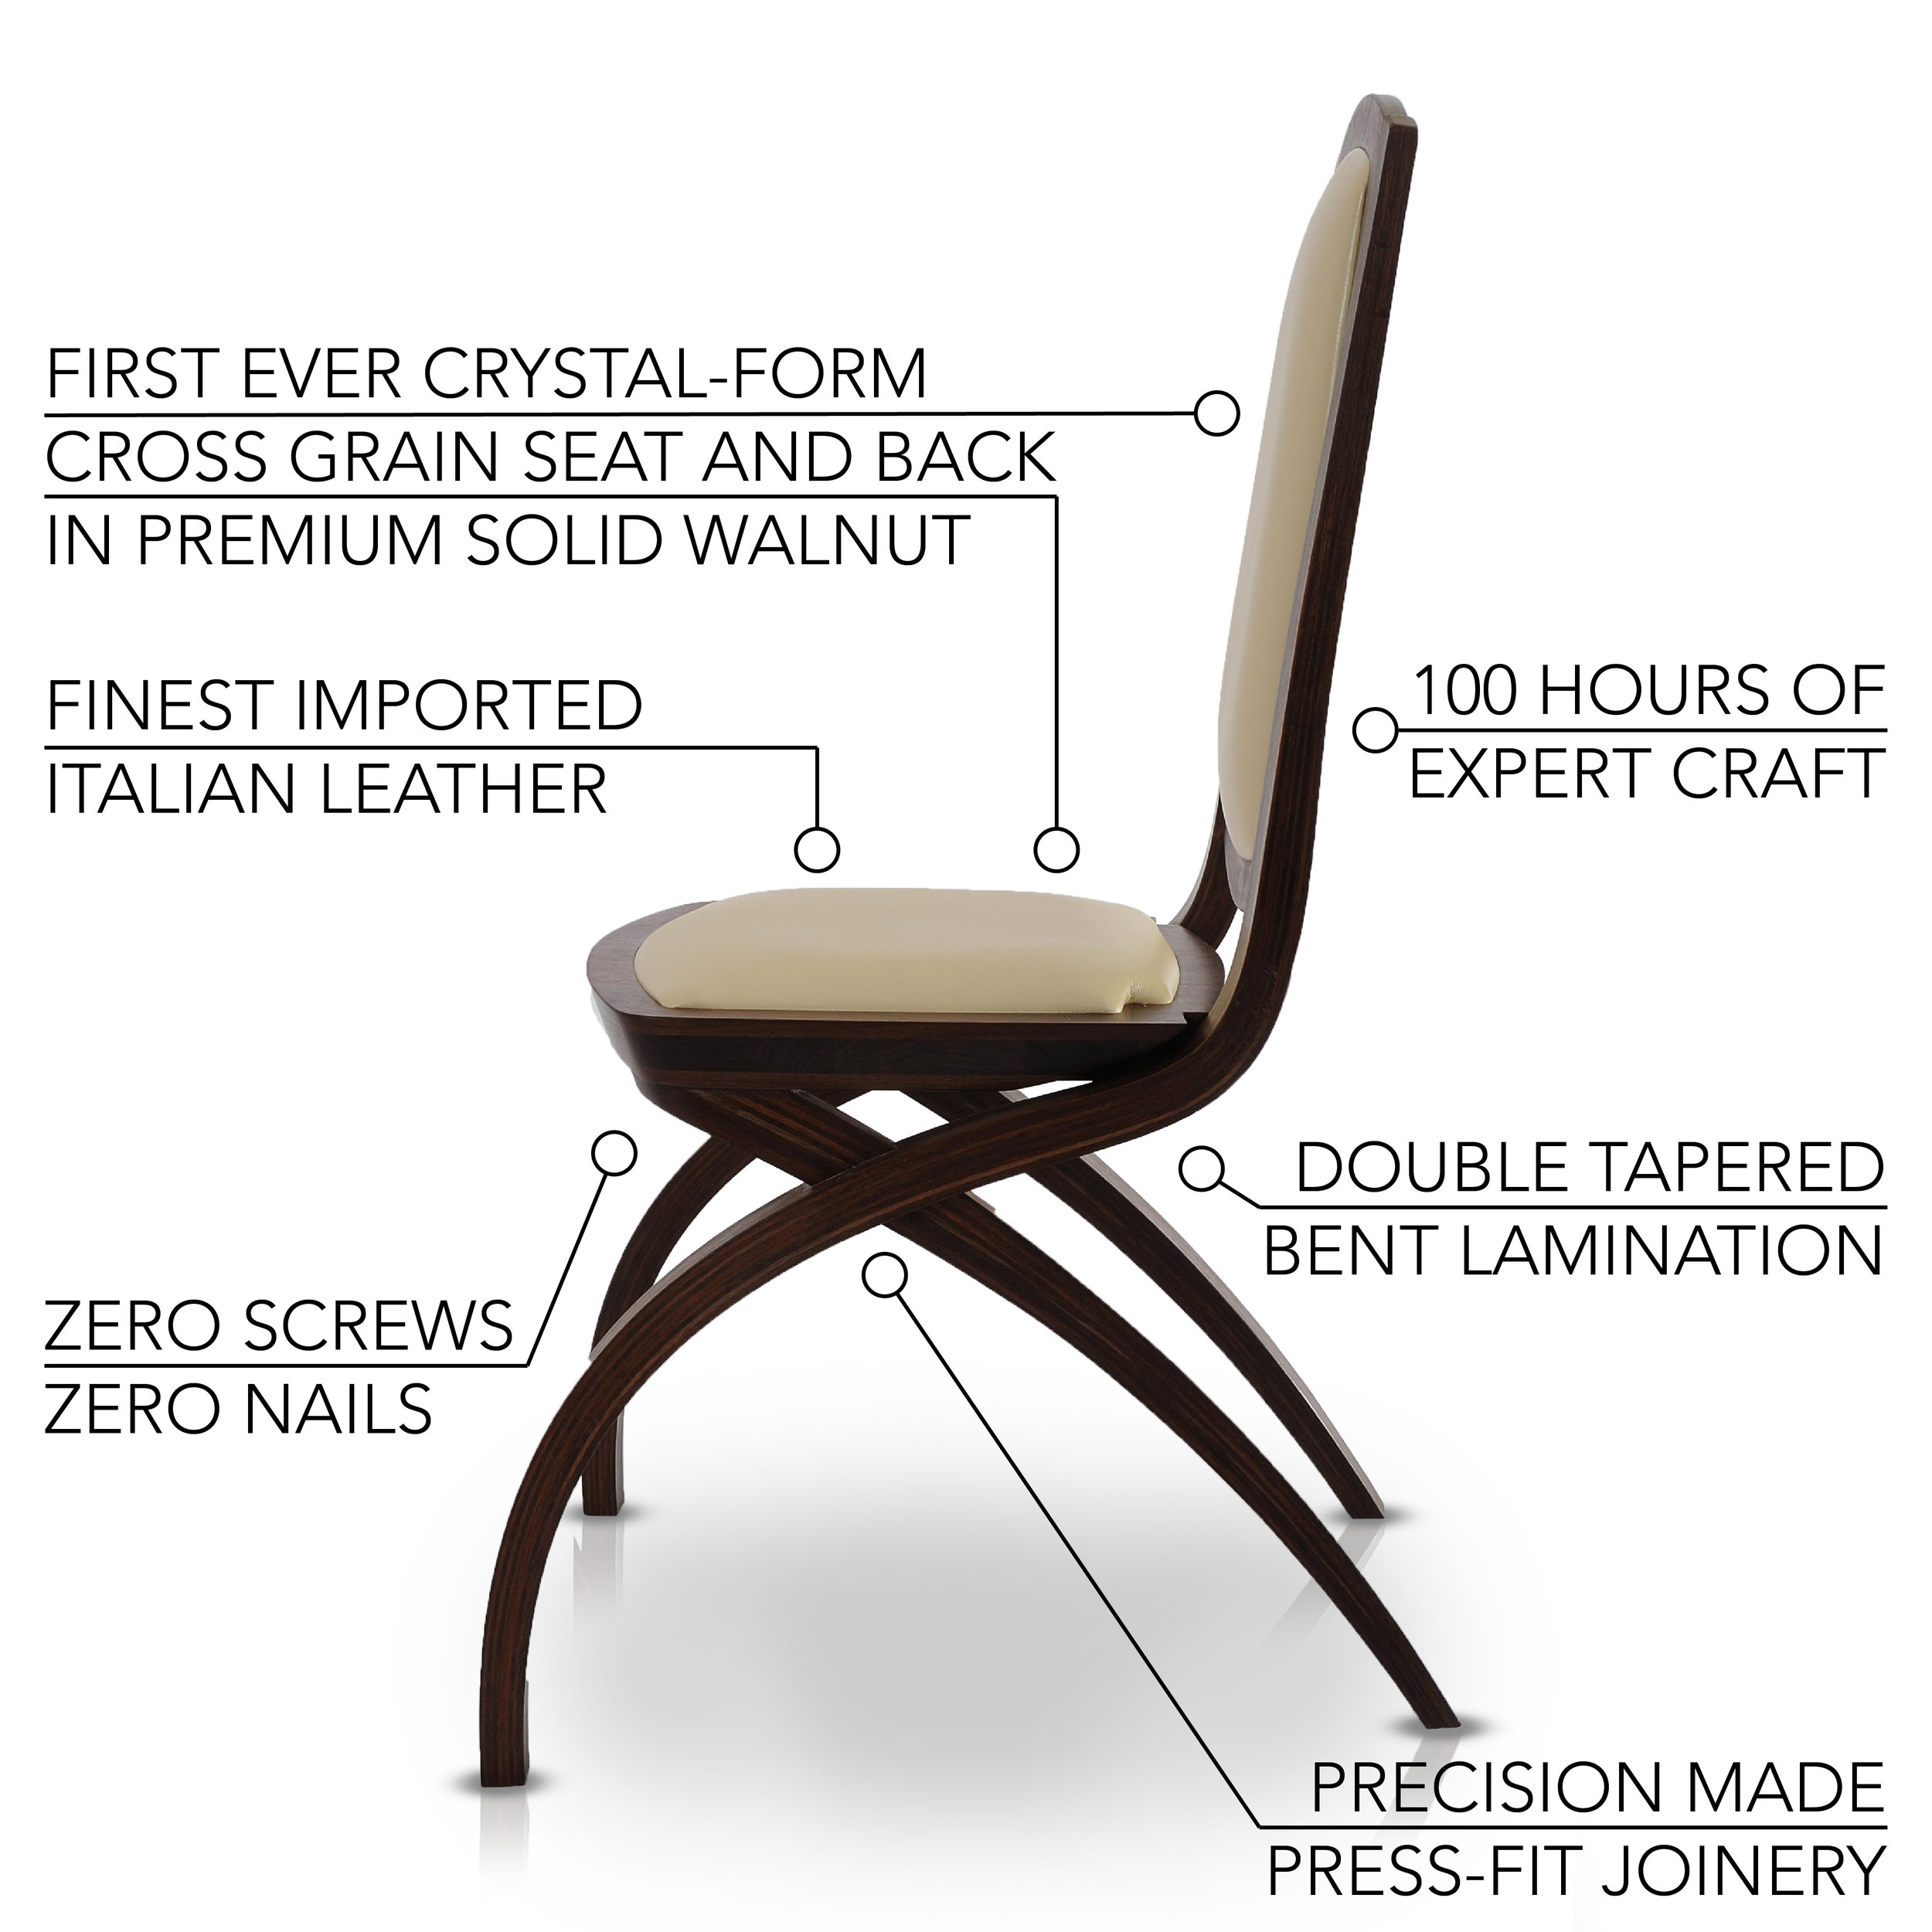 Giancarlo_Studio_Furniture_Lydig_Dining_Chair_Technology_Double_Tapered_Bent_Lamination-01.jpg